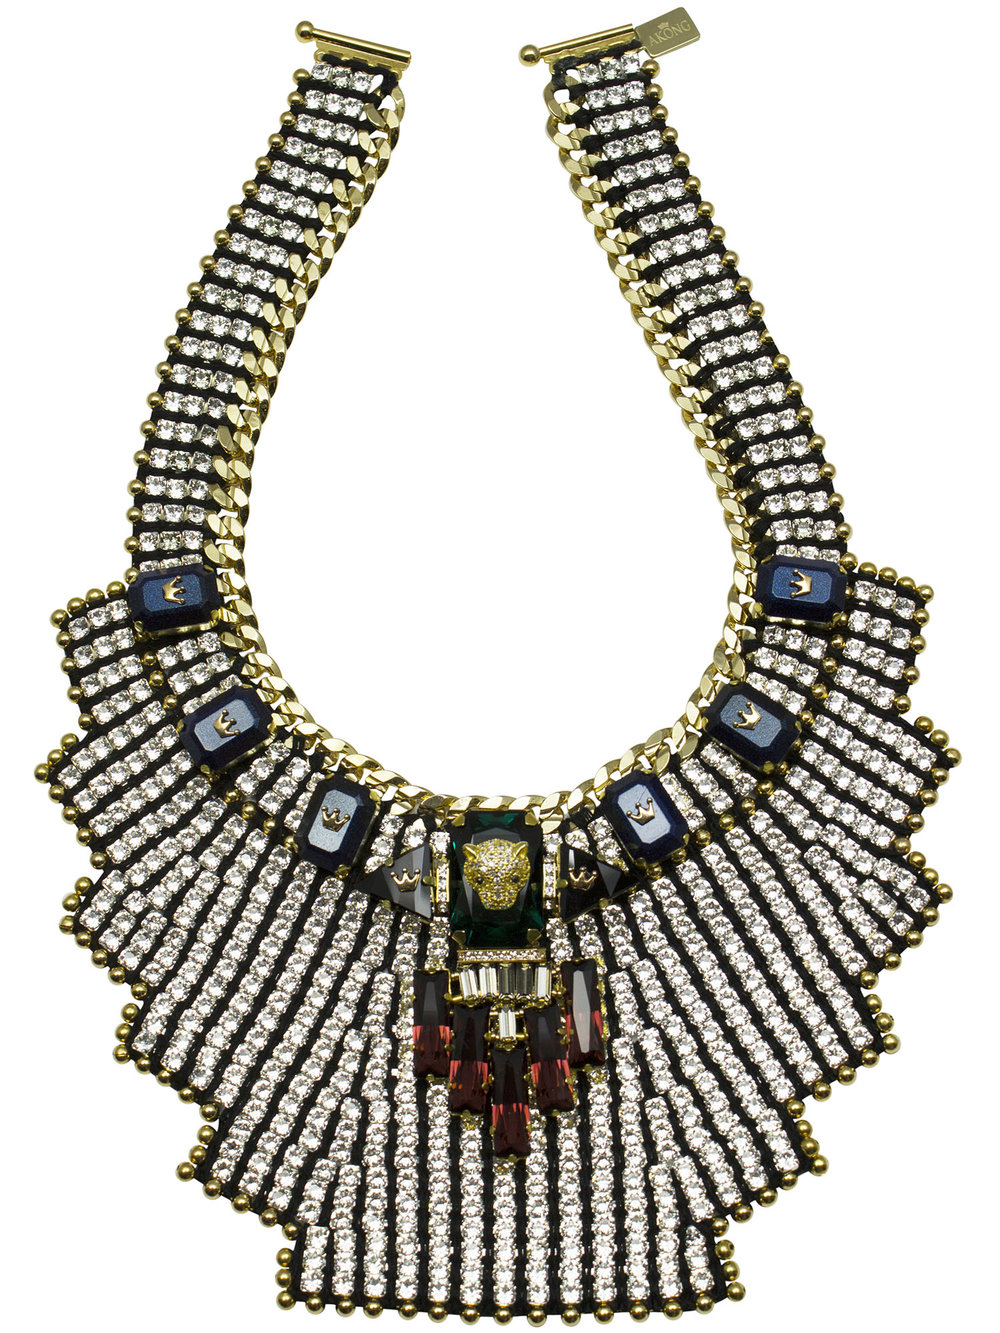 216N Crystal Military Maxi Deco Bib Necklace.jpg